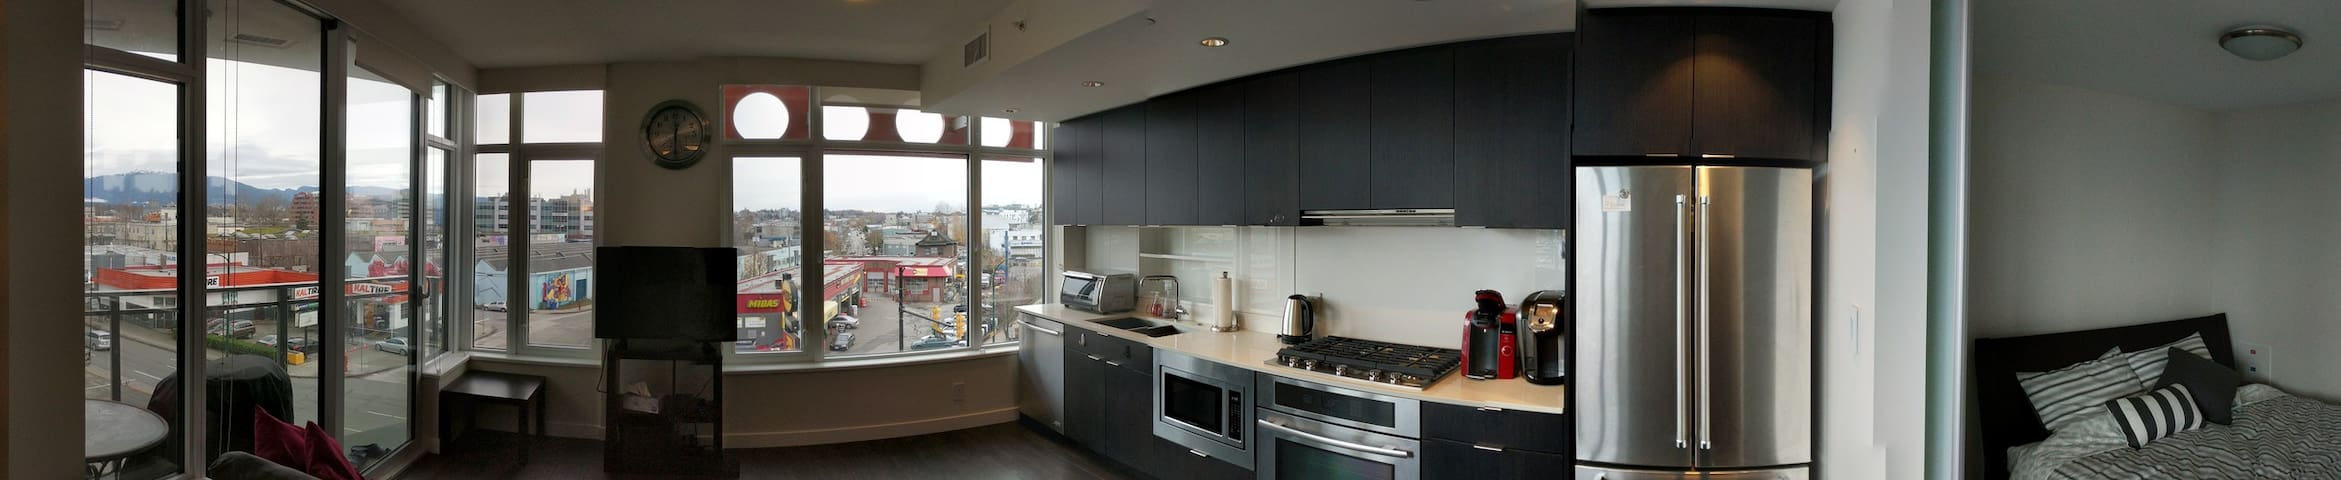 New air conditioned one bedroom in False Creek